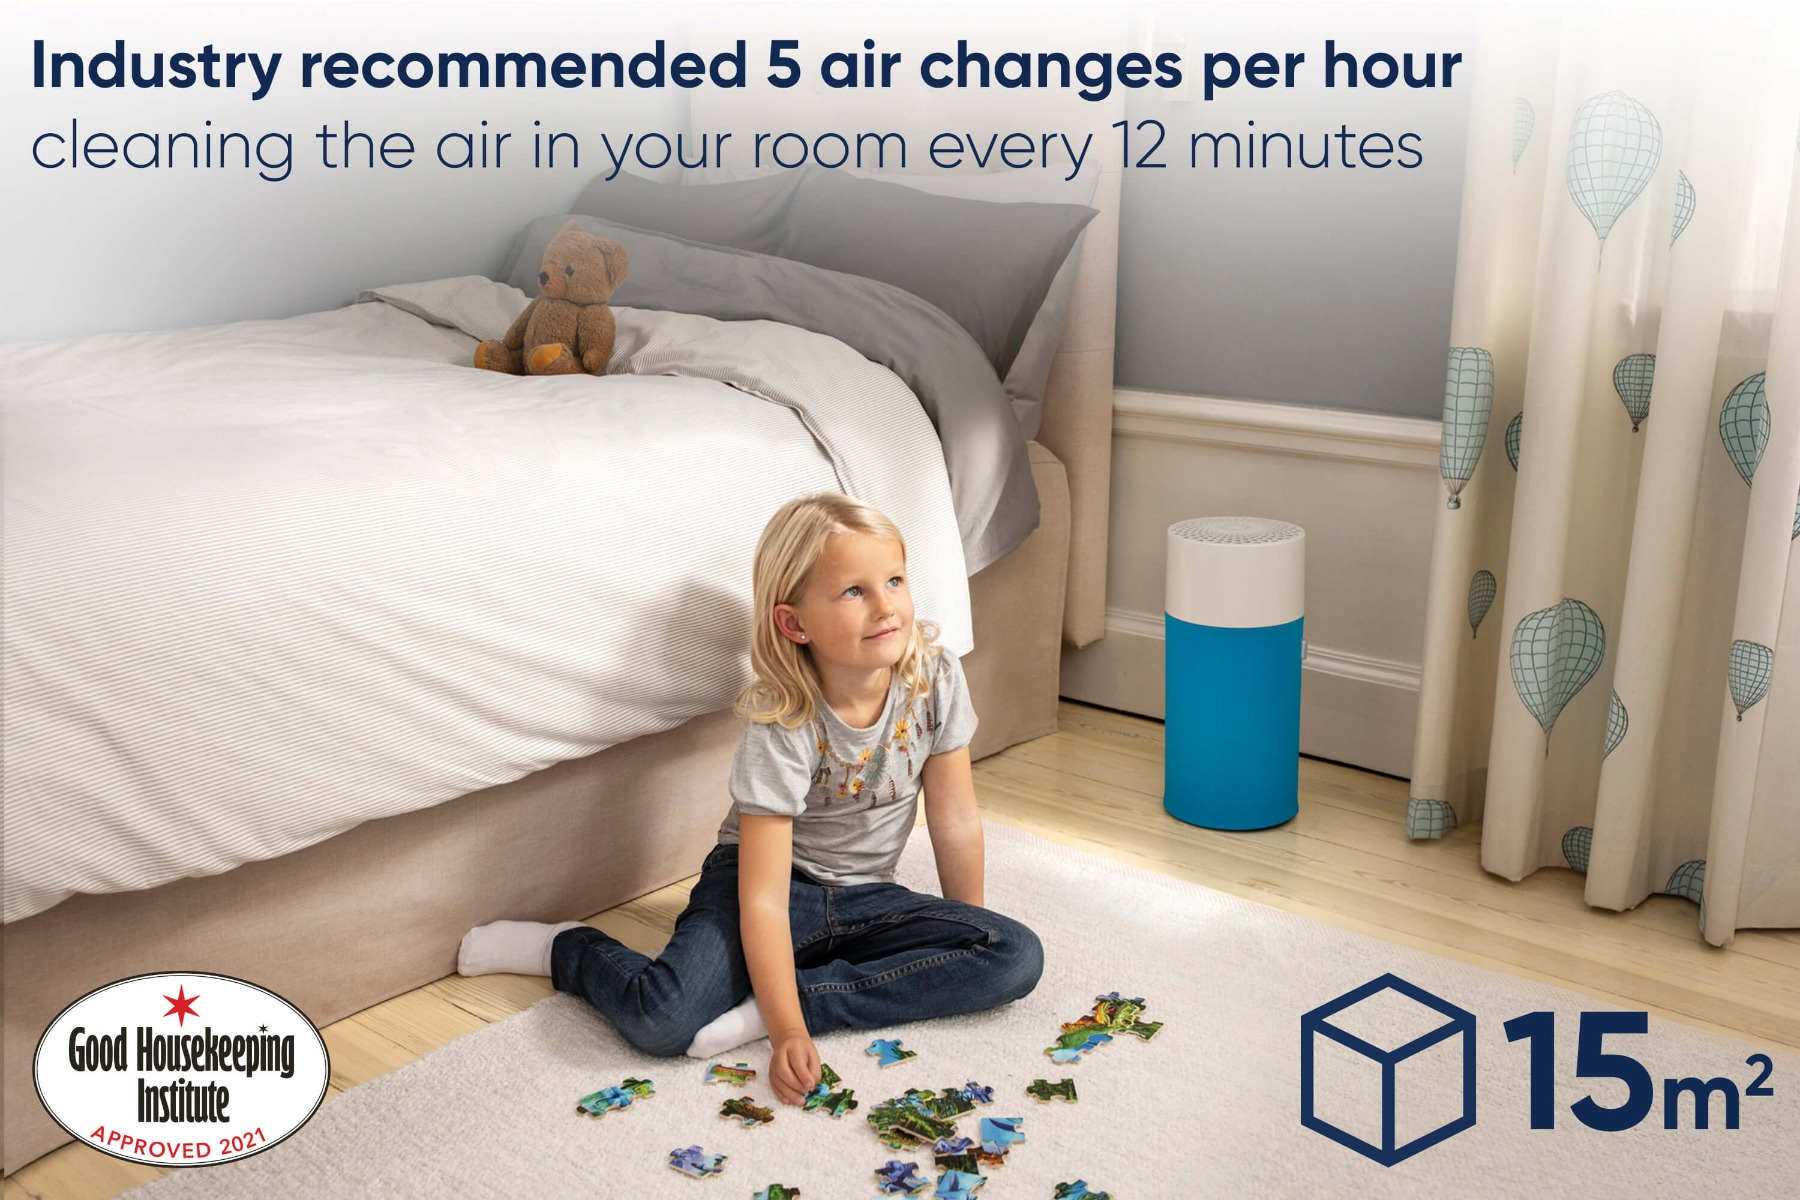 Blueair  designed for small spaces